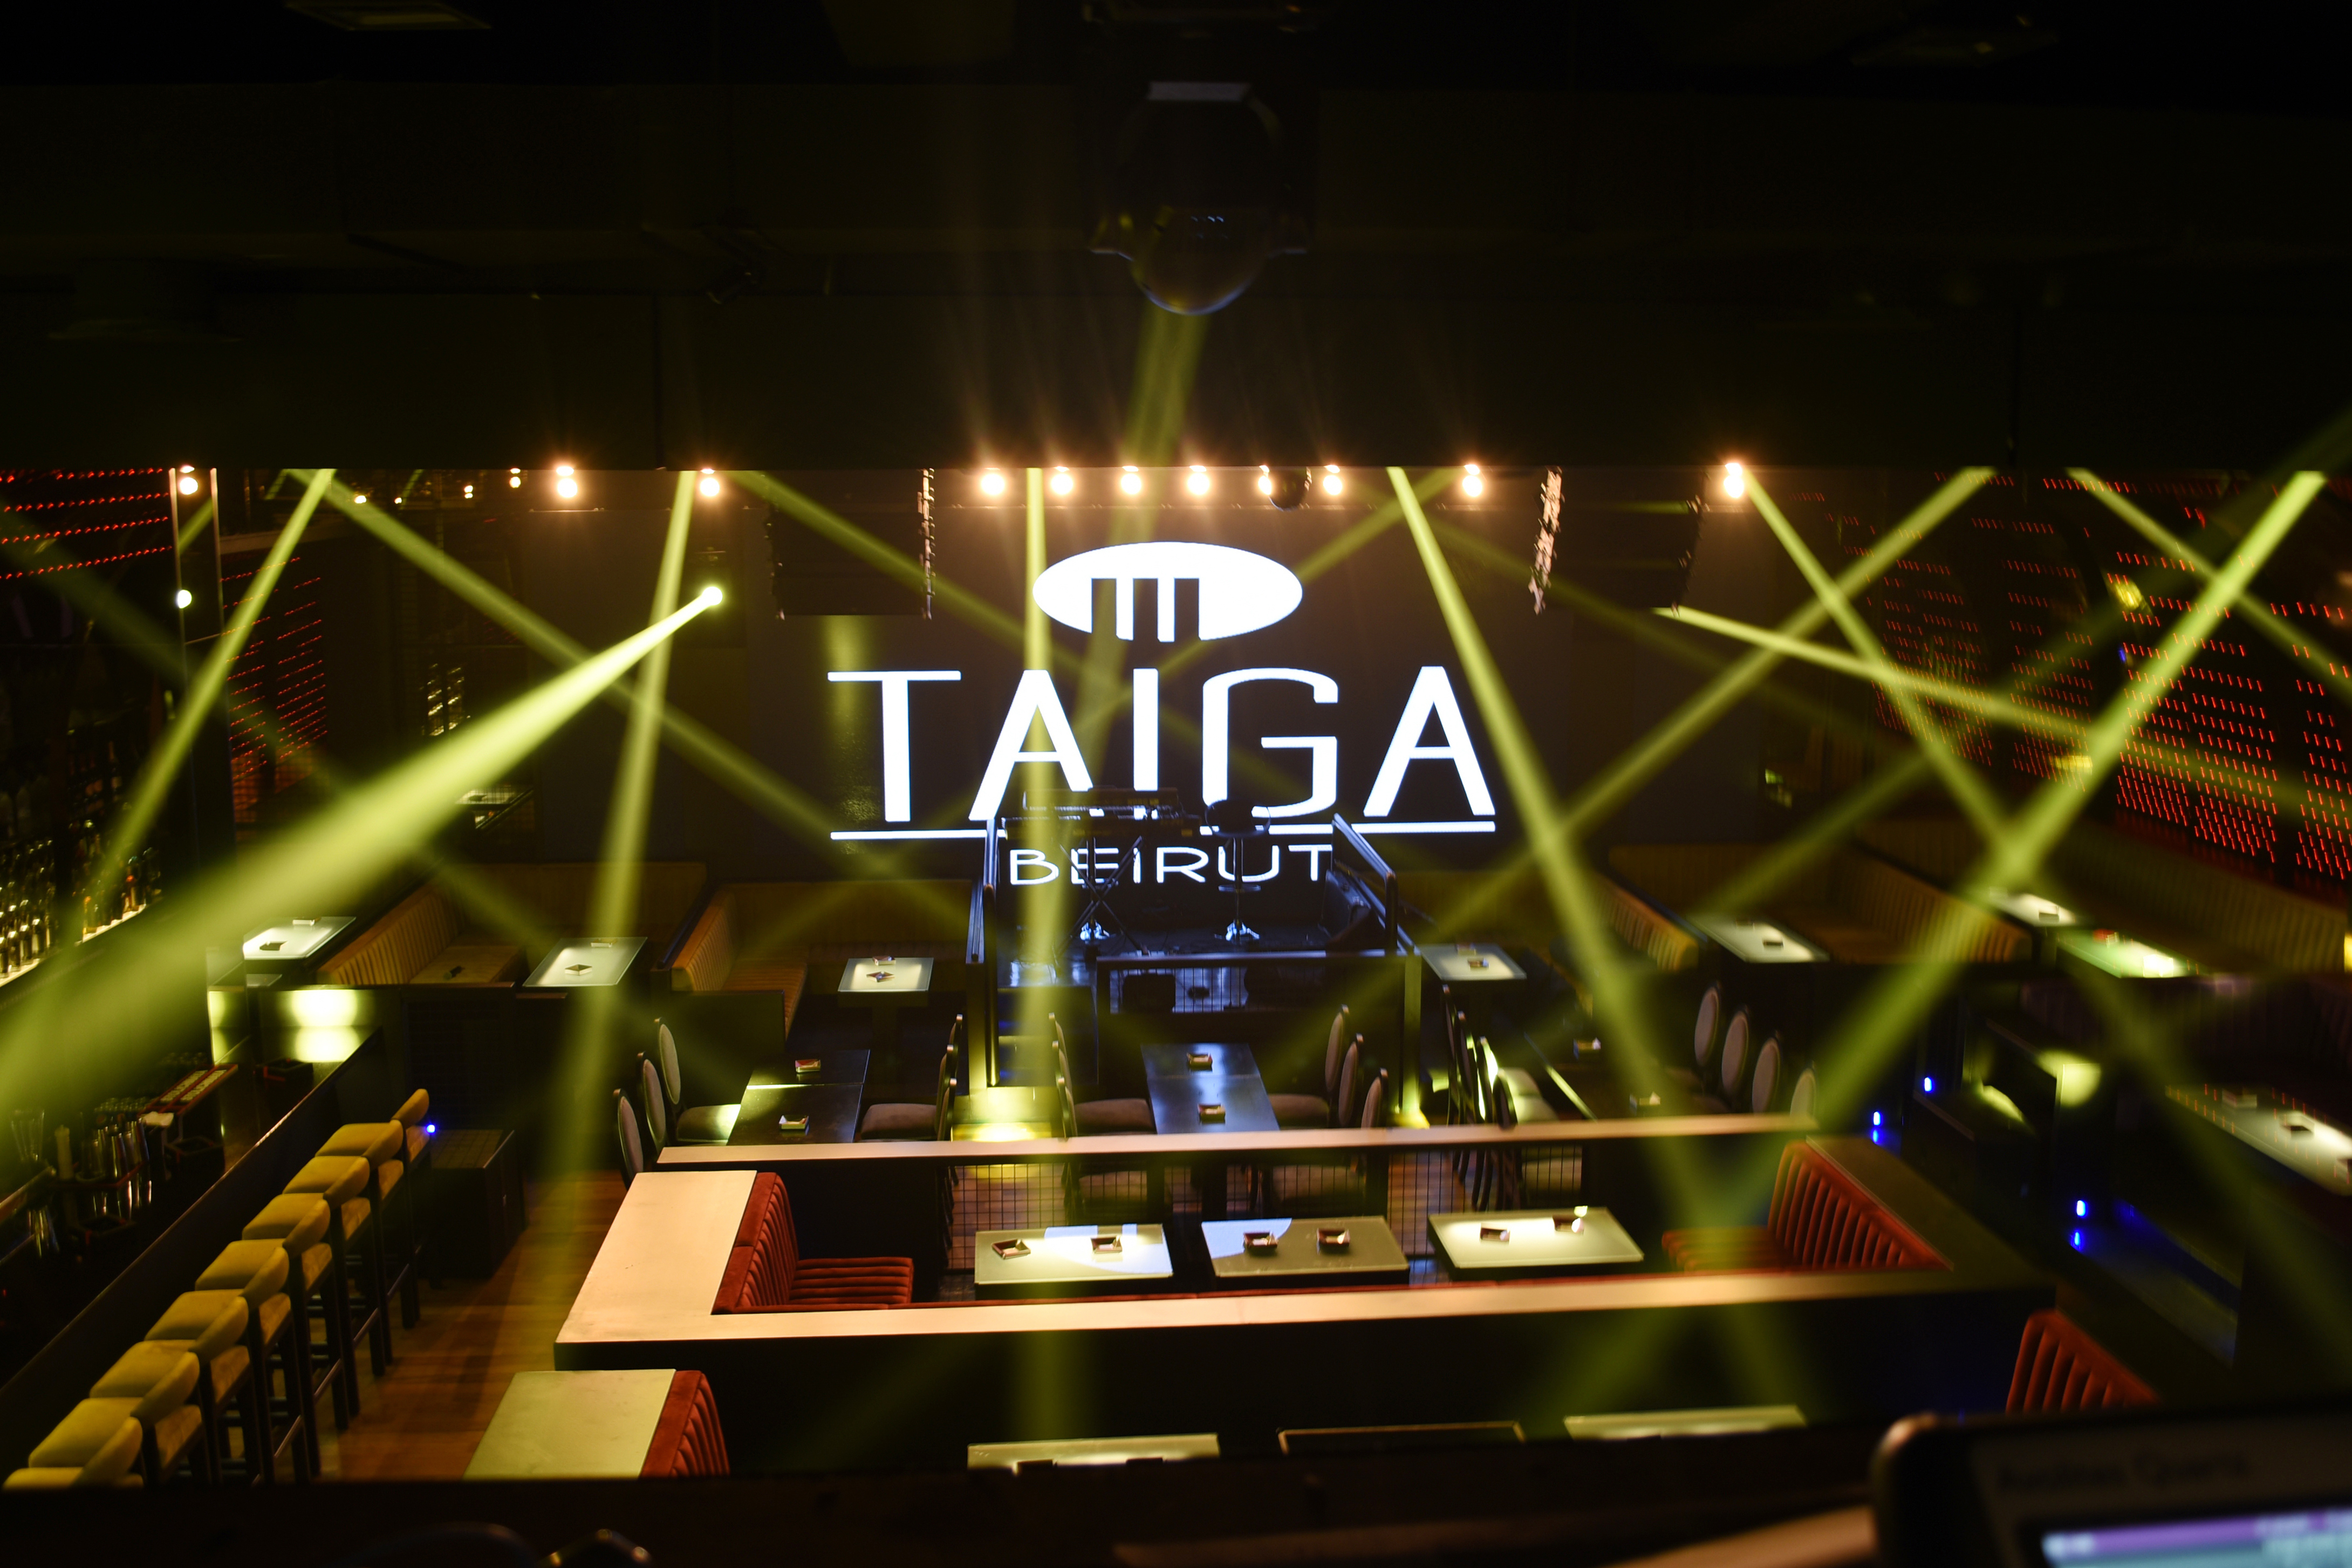 Taiga Beirut Opens its Doors with State-of-the-Art Sound – K-array